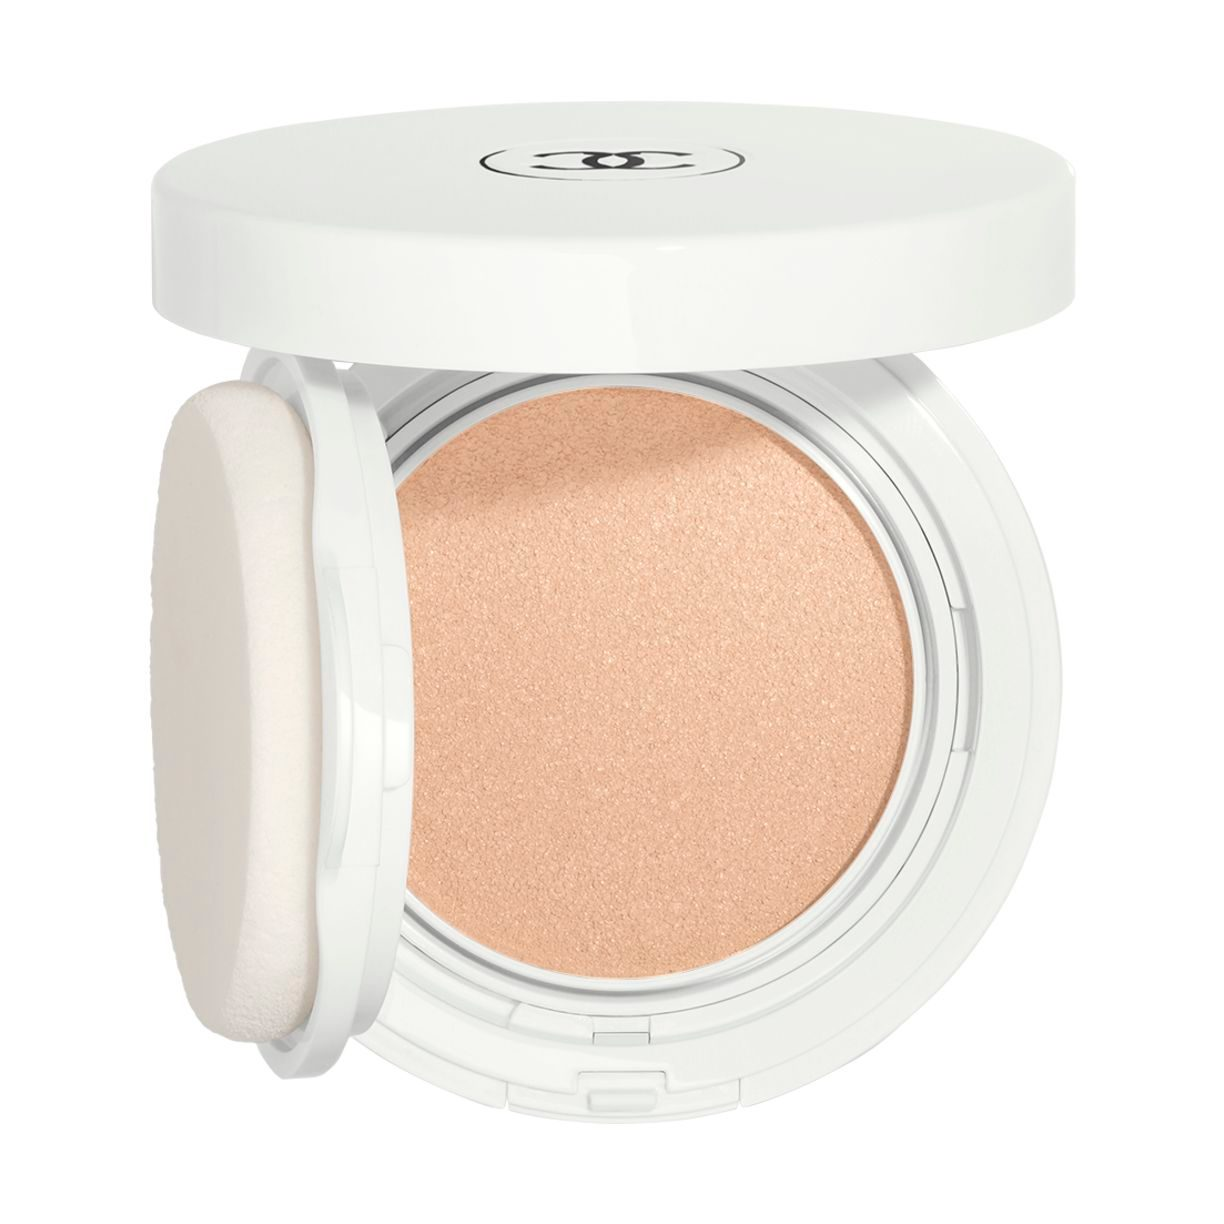 LE BLANC OIL-IN-CREAM COMPACT FOUNDATION WHITENING – THERMAL COMFORT SPF 40 / PA ++ 20 - BEIGE